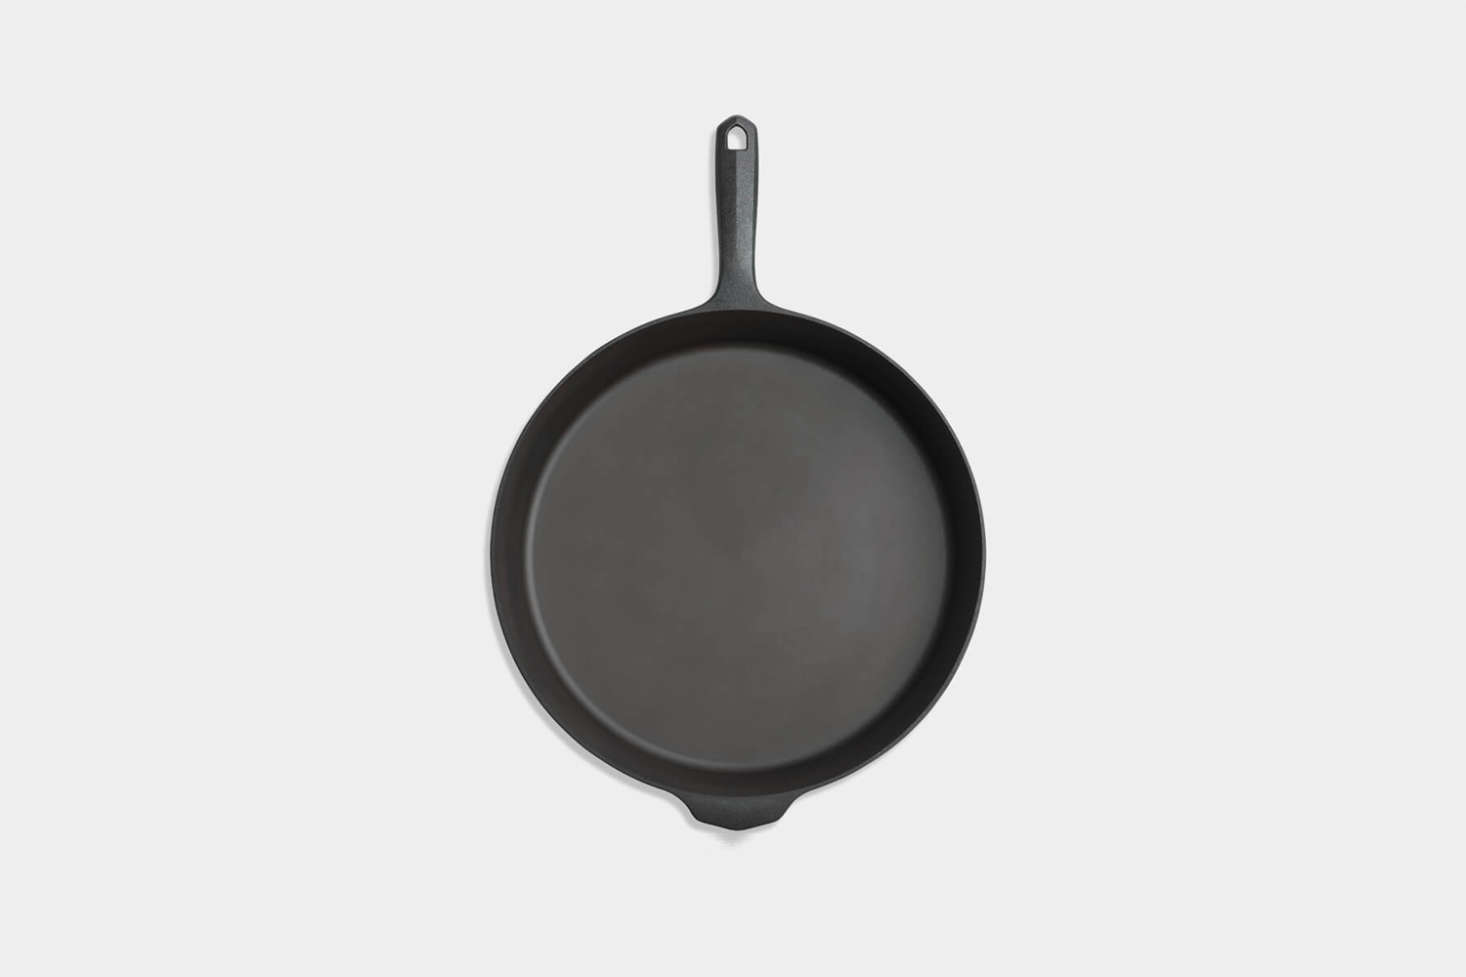 From Best Made Co., the Field #12 Cast Iron Skillet by Field Company is $218. Contact Best Made Co. for restocking information.